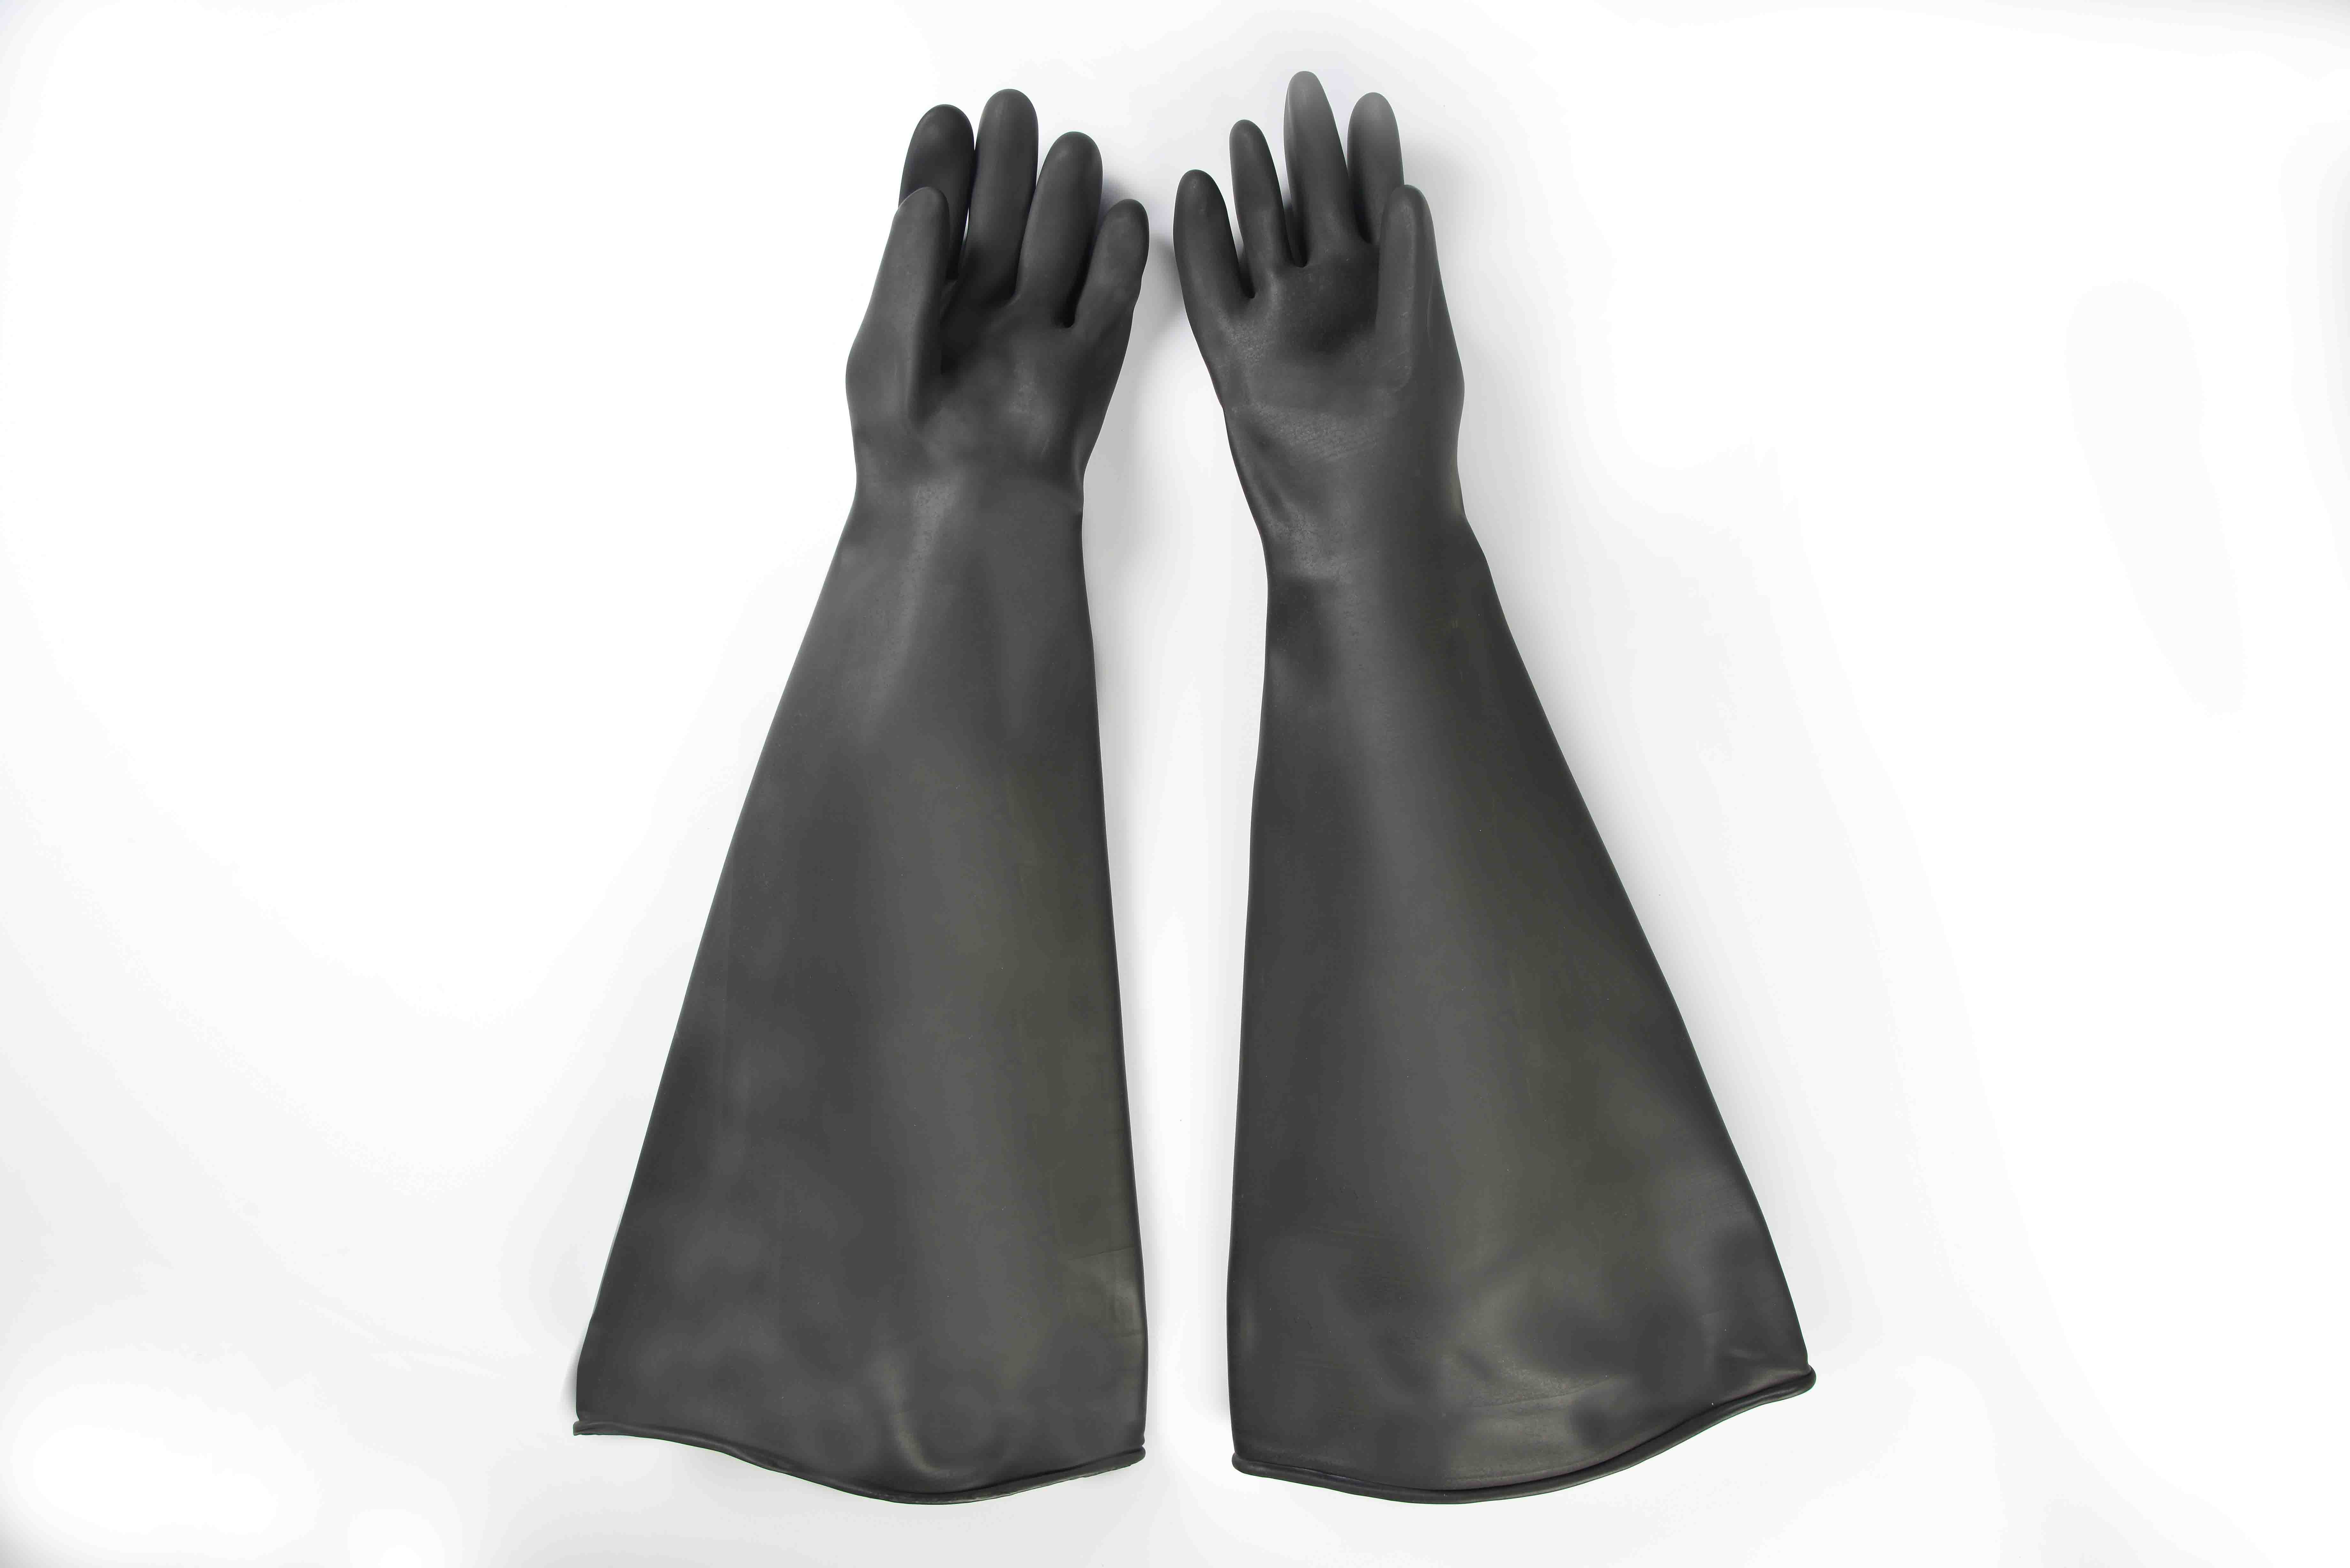 Hot sale reasonable price 26″ Industrial rubber glove-smooth finish Comoros Supplier